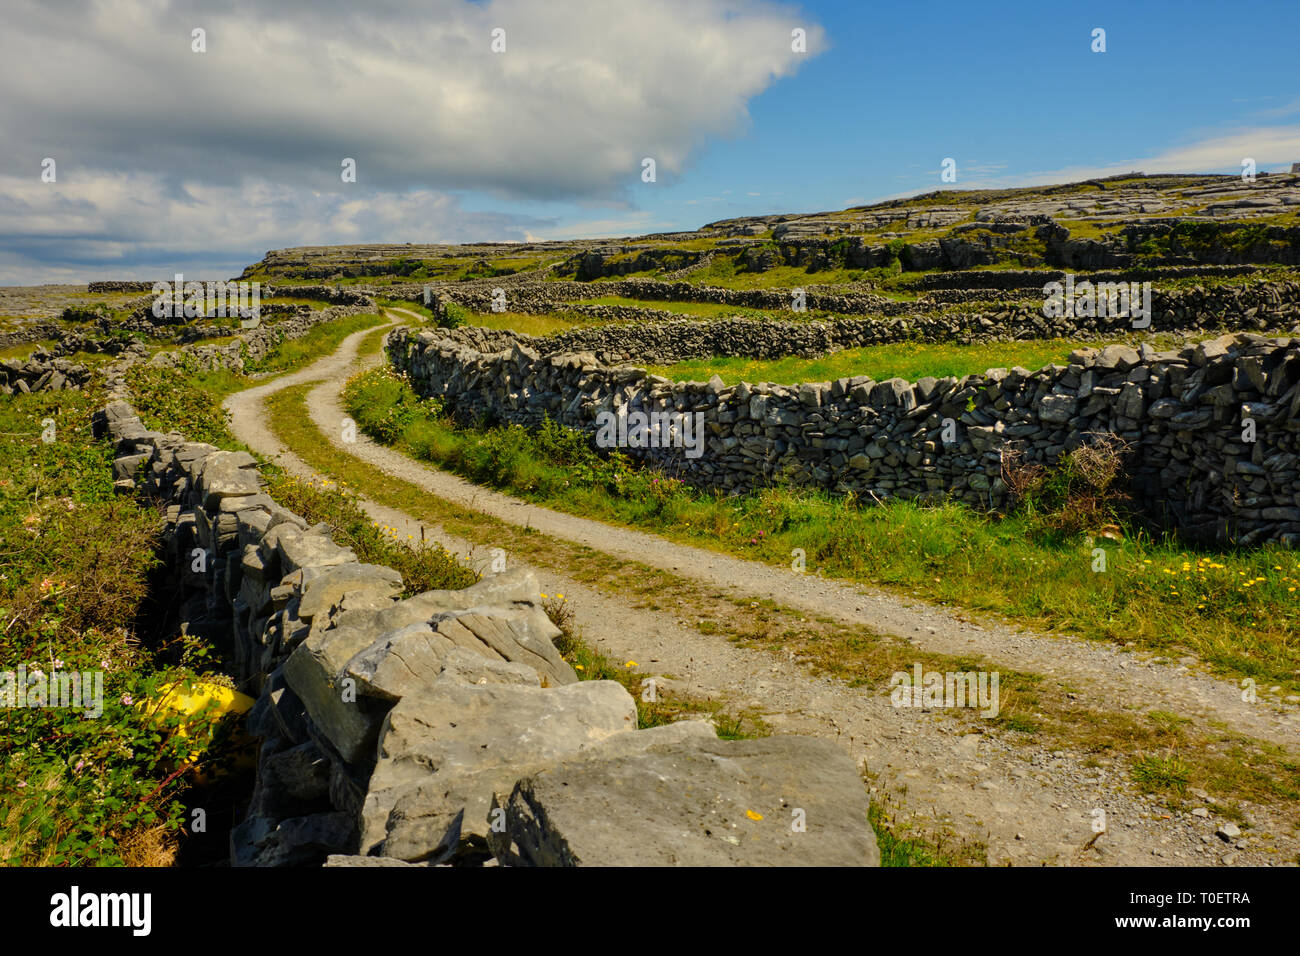 Old country road between rock walls in Irish isles on a blue sky day. - Stock Image